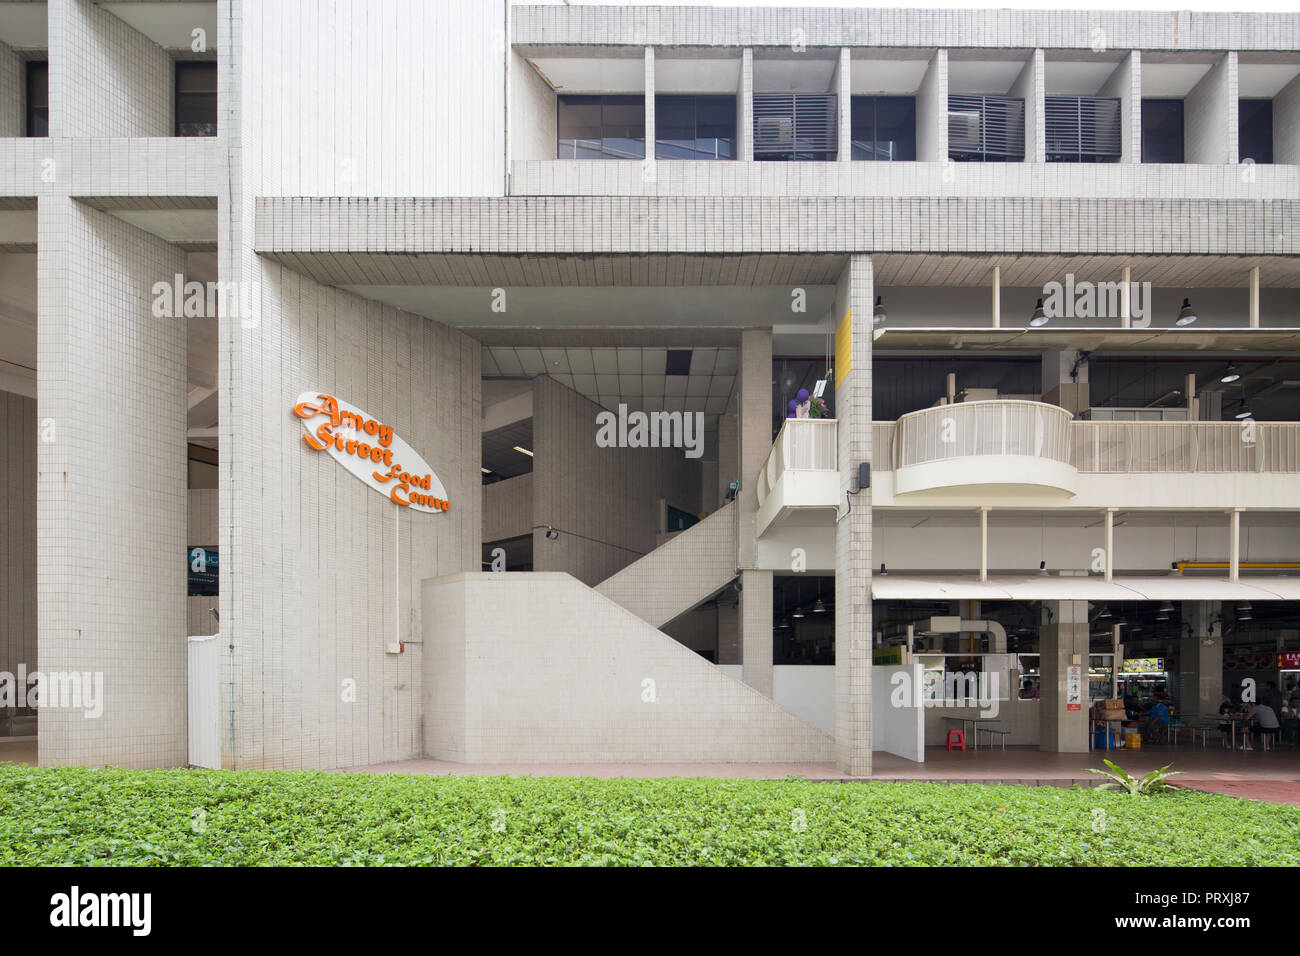 Amoy street food centre is a brutalist architecture design in Singapore - Stock Image